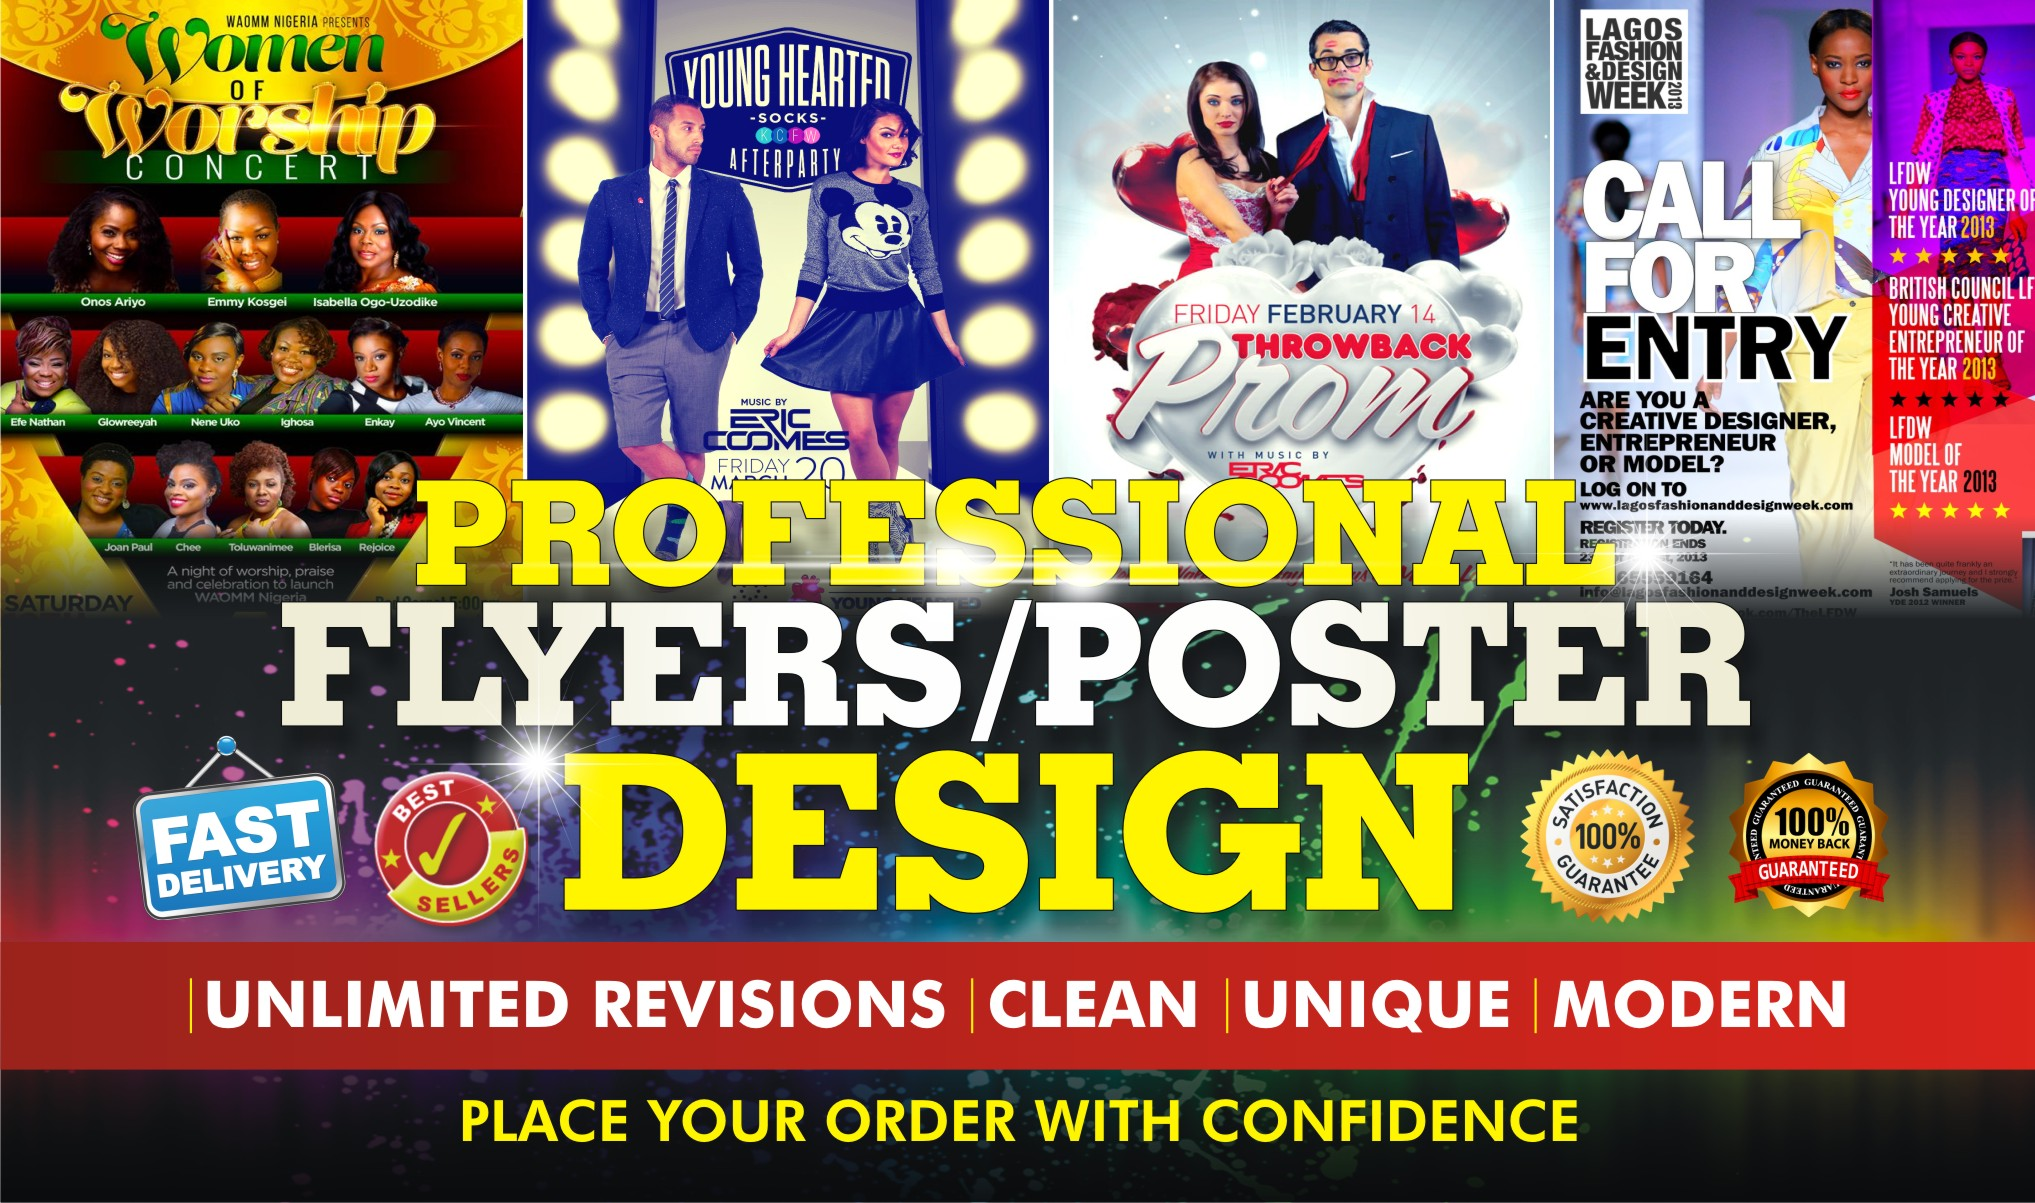 Awesome FlyerPoster Design for your Business